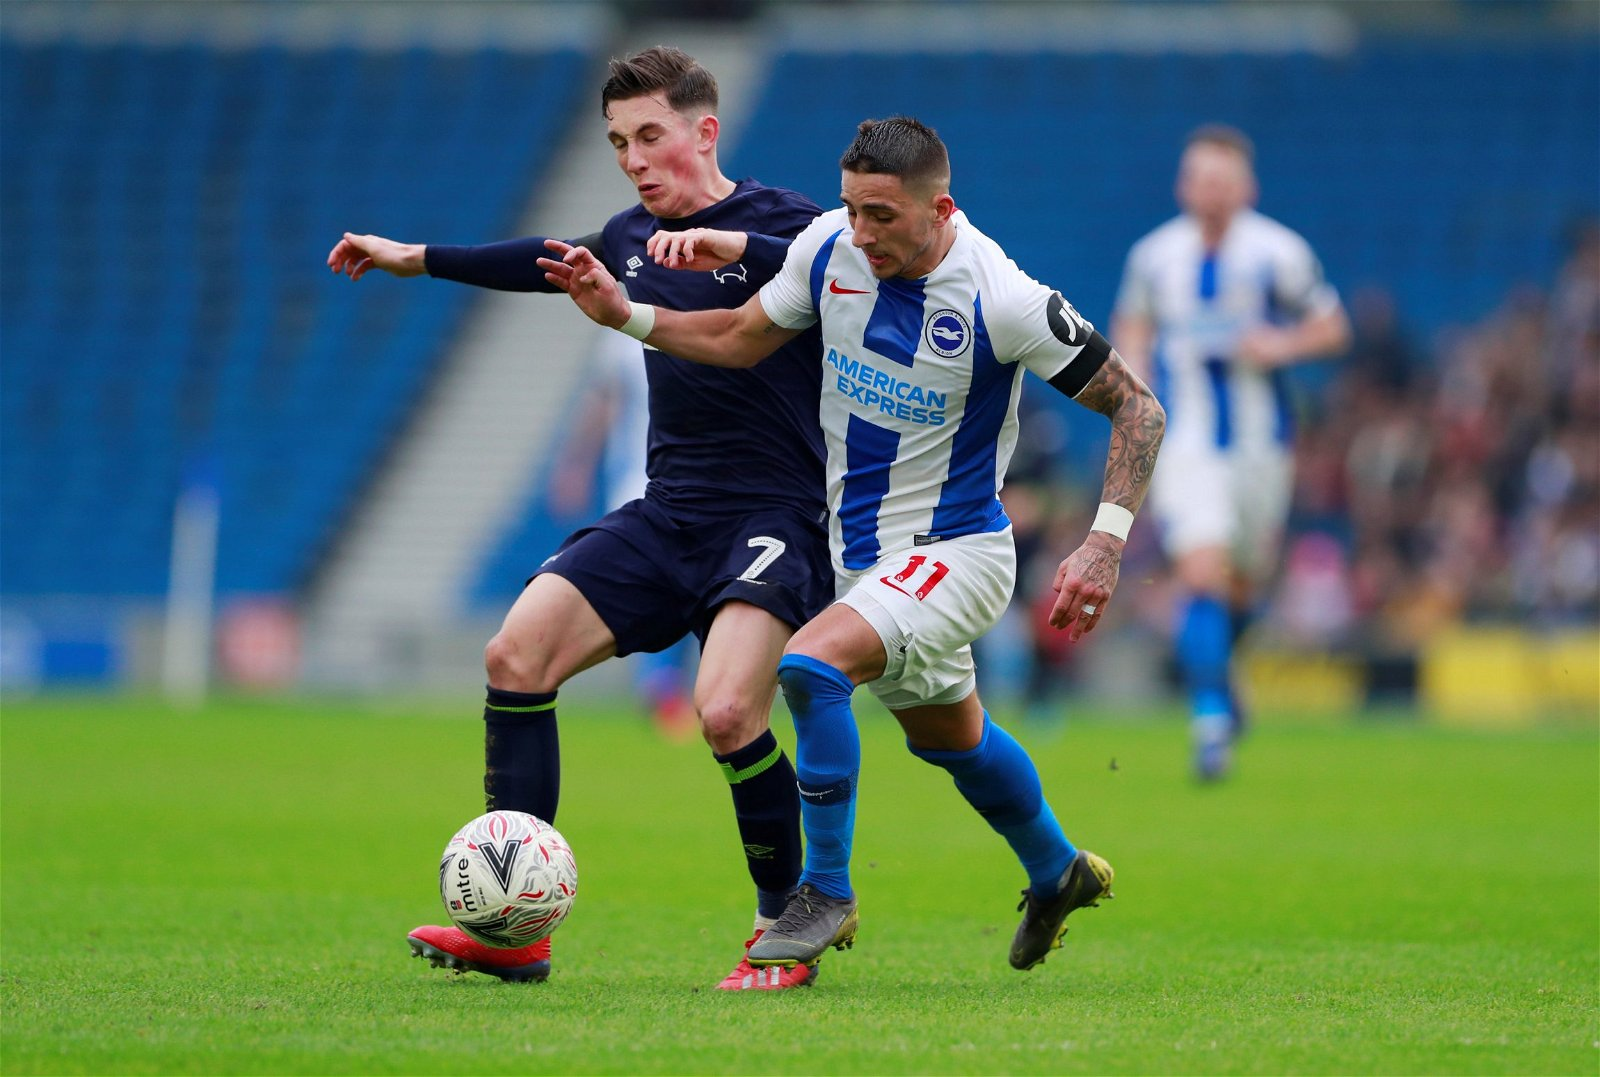 Derby County loanee Harry Wilson in action with Brightons Anthony Knockaert - [Image] - Big-money Brighton target battles with man he could replace in Potter's XI next season